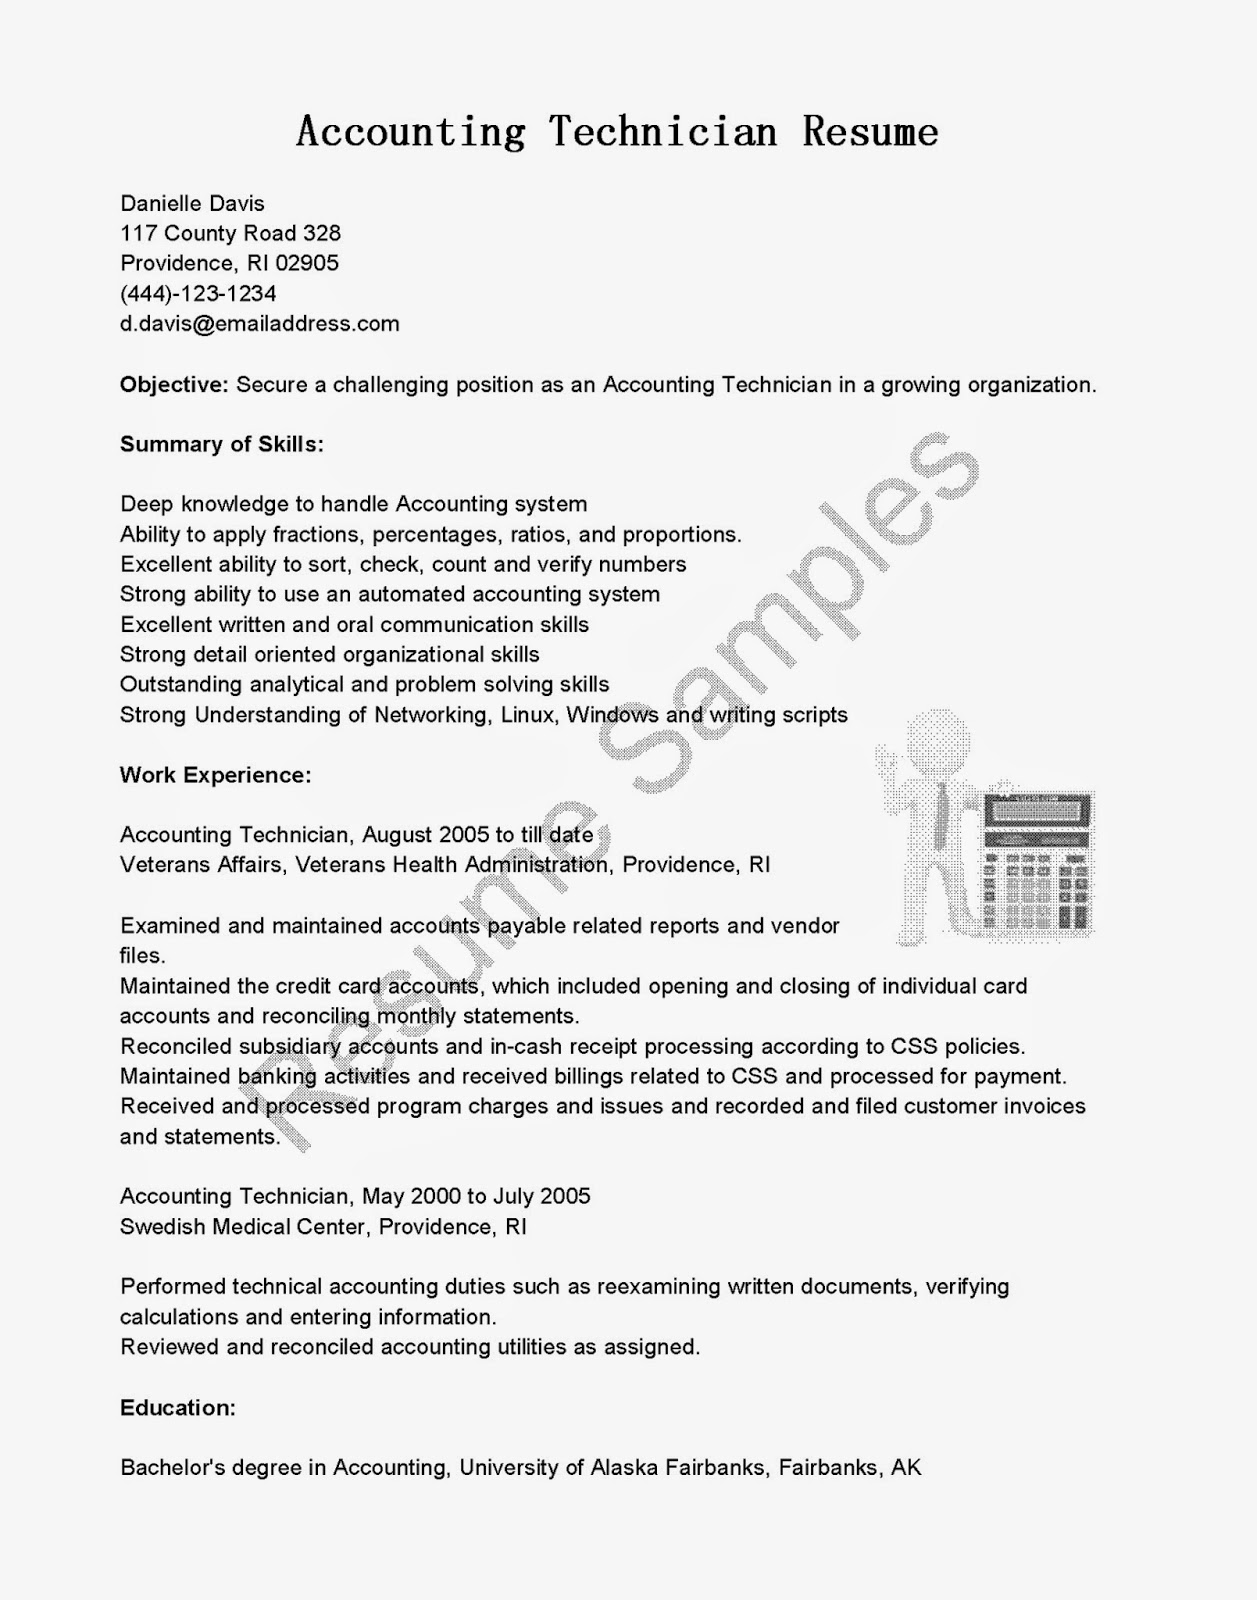 Accounting Degree Resume Samples Resume Pdf Accounting Degree Resume  Samples Accounting Associate Resume Samples Jobhero Resume